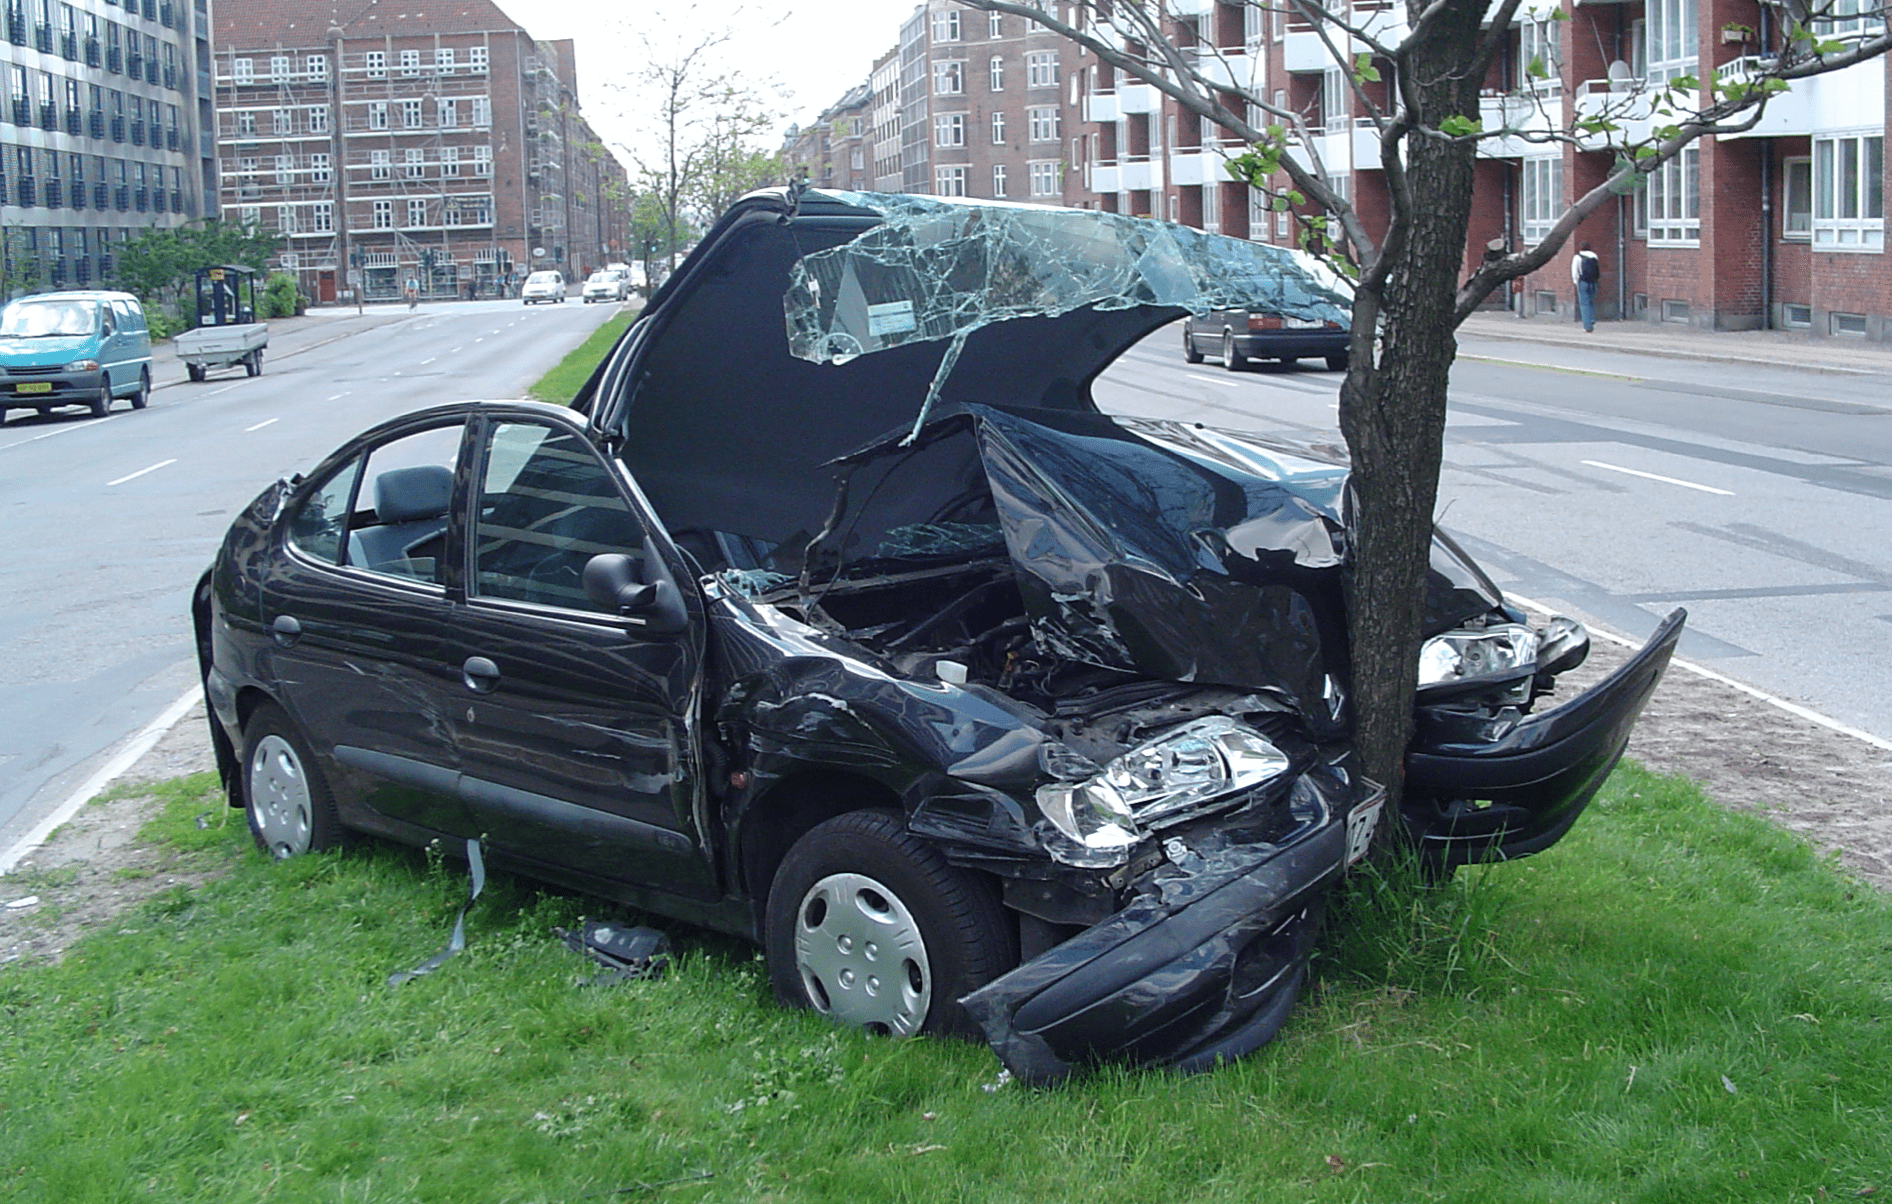 Black sedan in head-on collision with tree; image by Thue, via Wikimedia Commons, CC0.